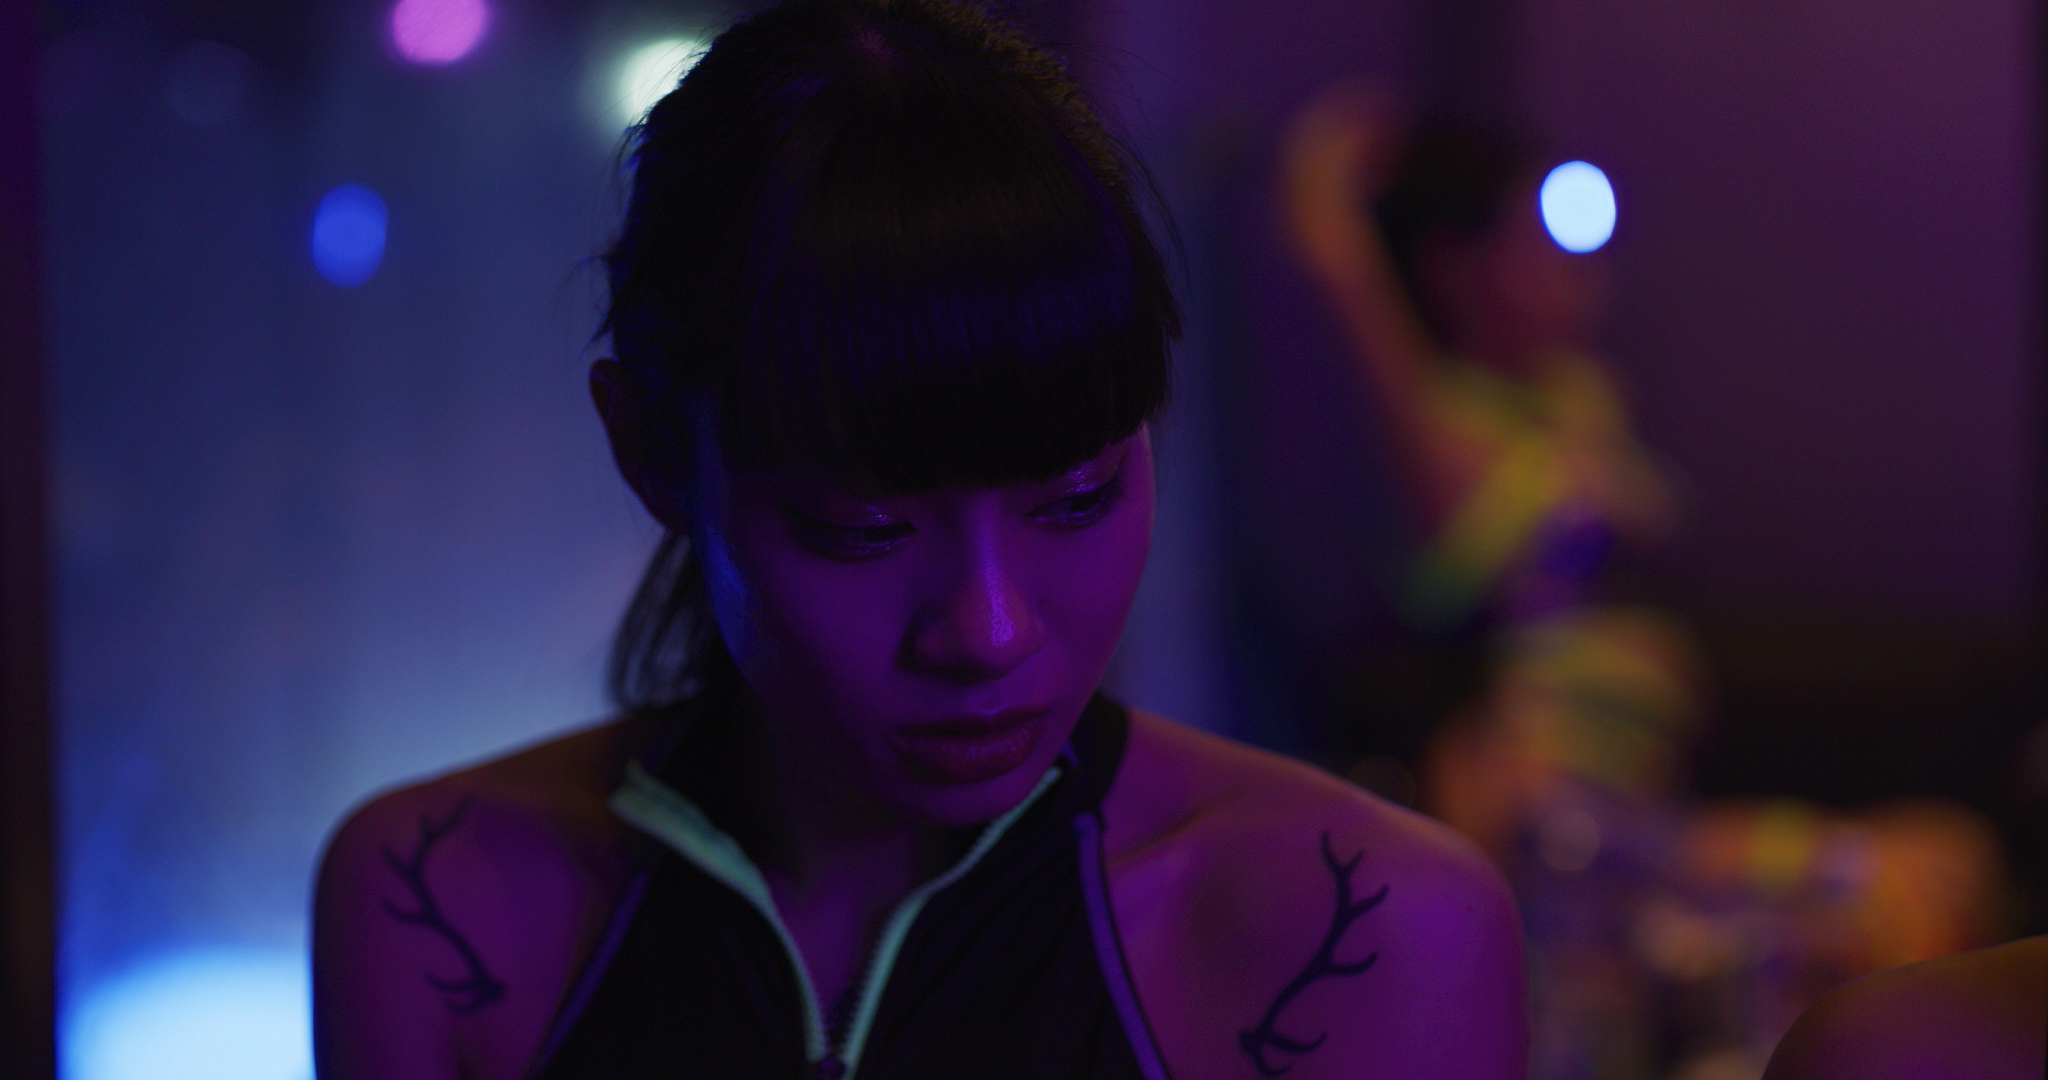 A young Japanese girl looks to the side. Her dark hair is worn in bangs and she has on a top with neon green down the front. She wears